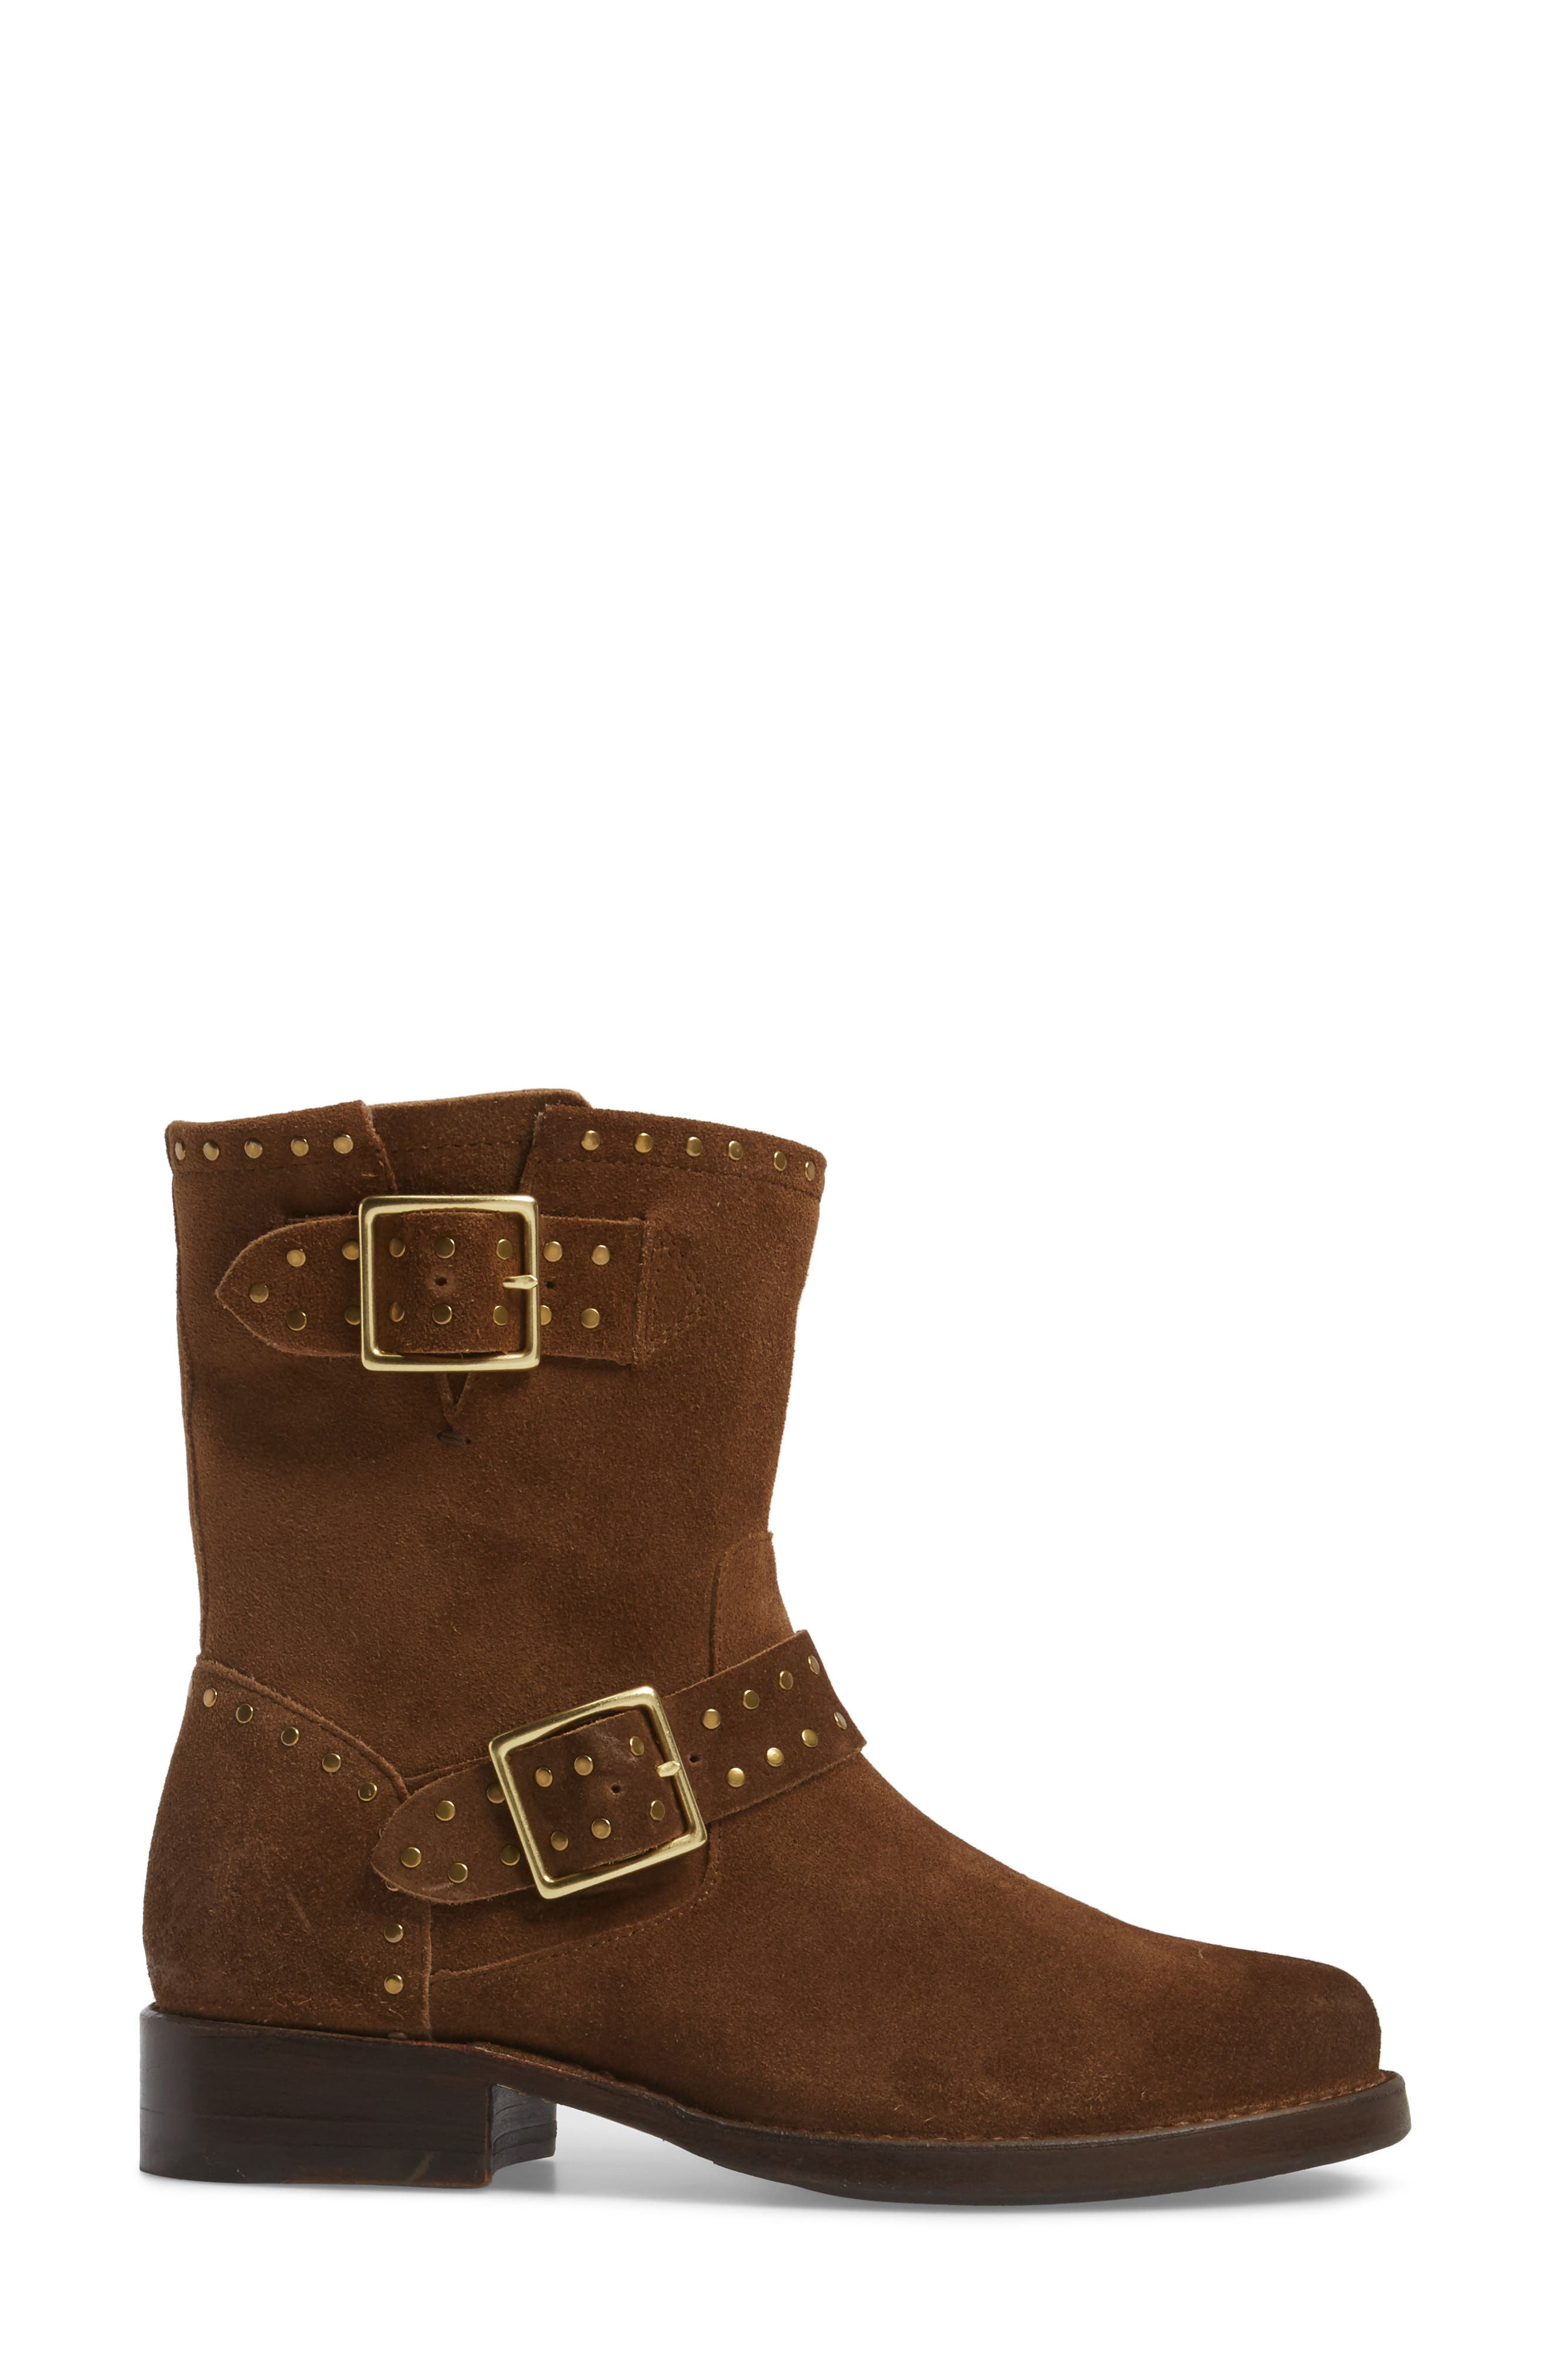 Vicky Stud Engineer Boot,                             Alternate thumbnail 3, color,                             Chestnut Suede